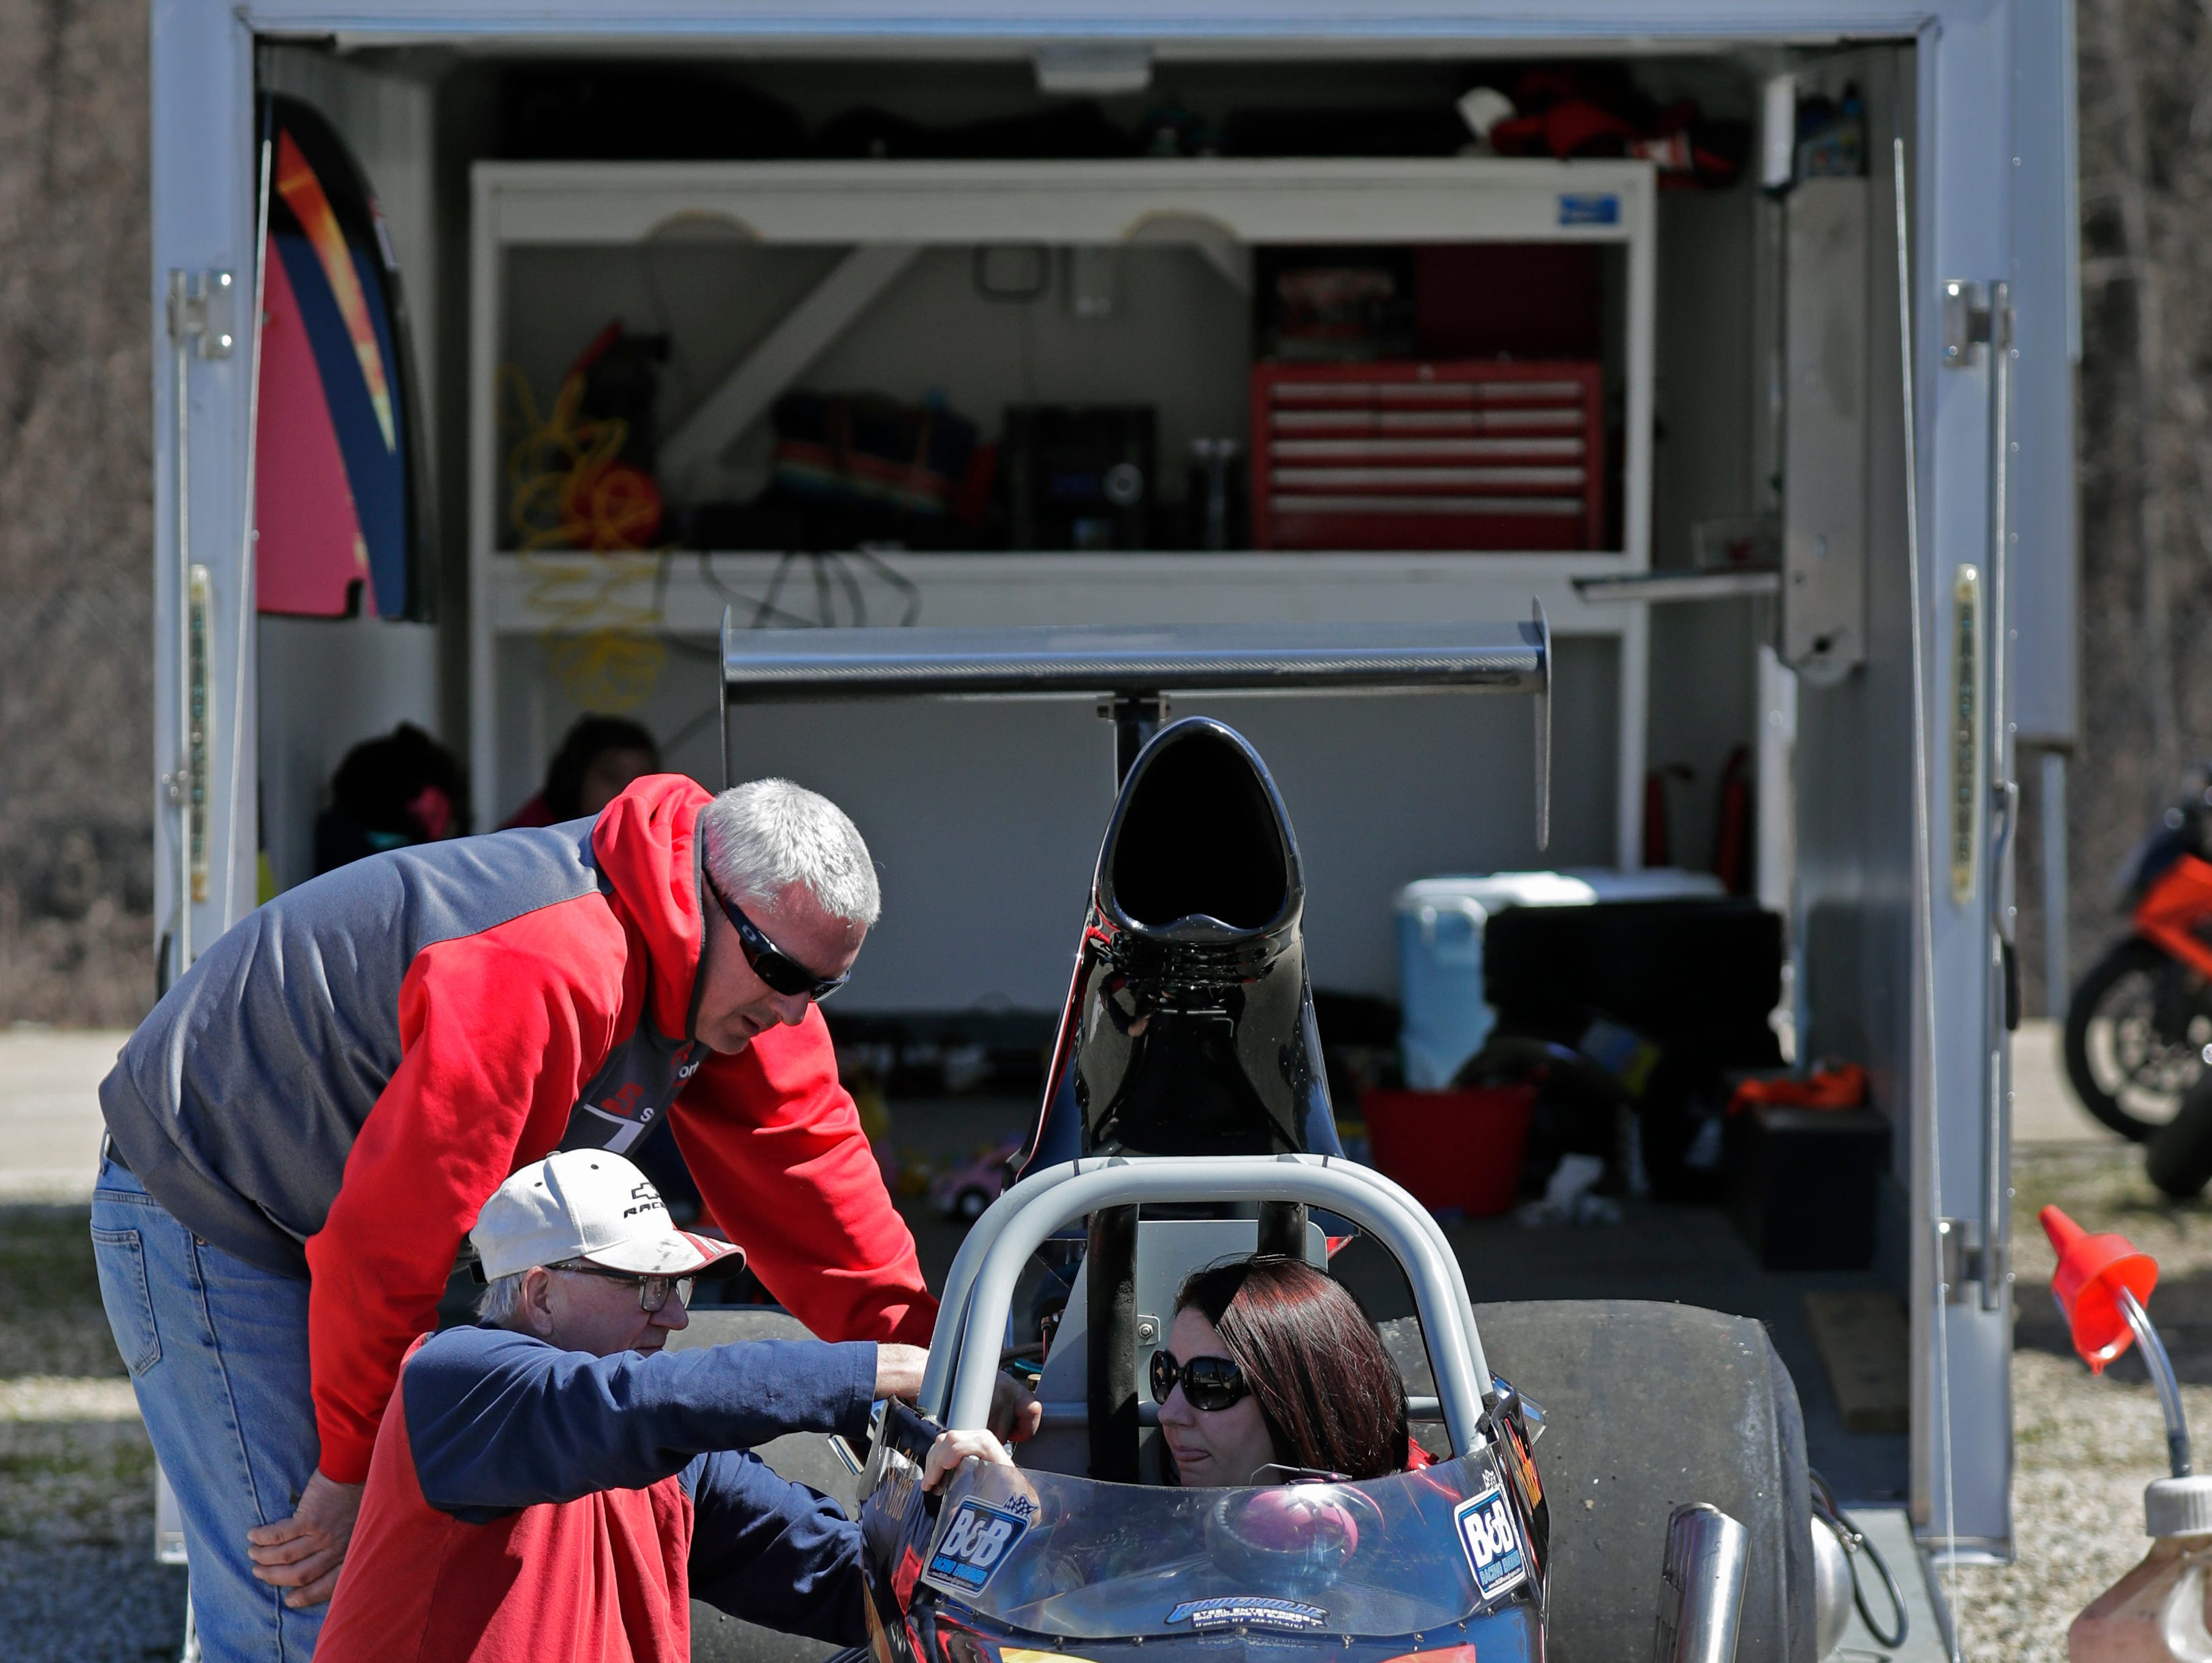 Steve Keller, left, of Appleton, Paul Londerville of Neenah and Nikki Keller, seated in car, make adjustments to their rear engine dragster during the Wisconsin International Raceway Strip Test & Tune event Saturday, April 20, 2019, in Kaukauna, Wis.